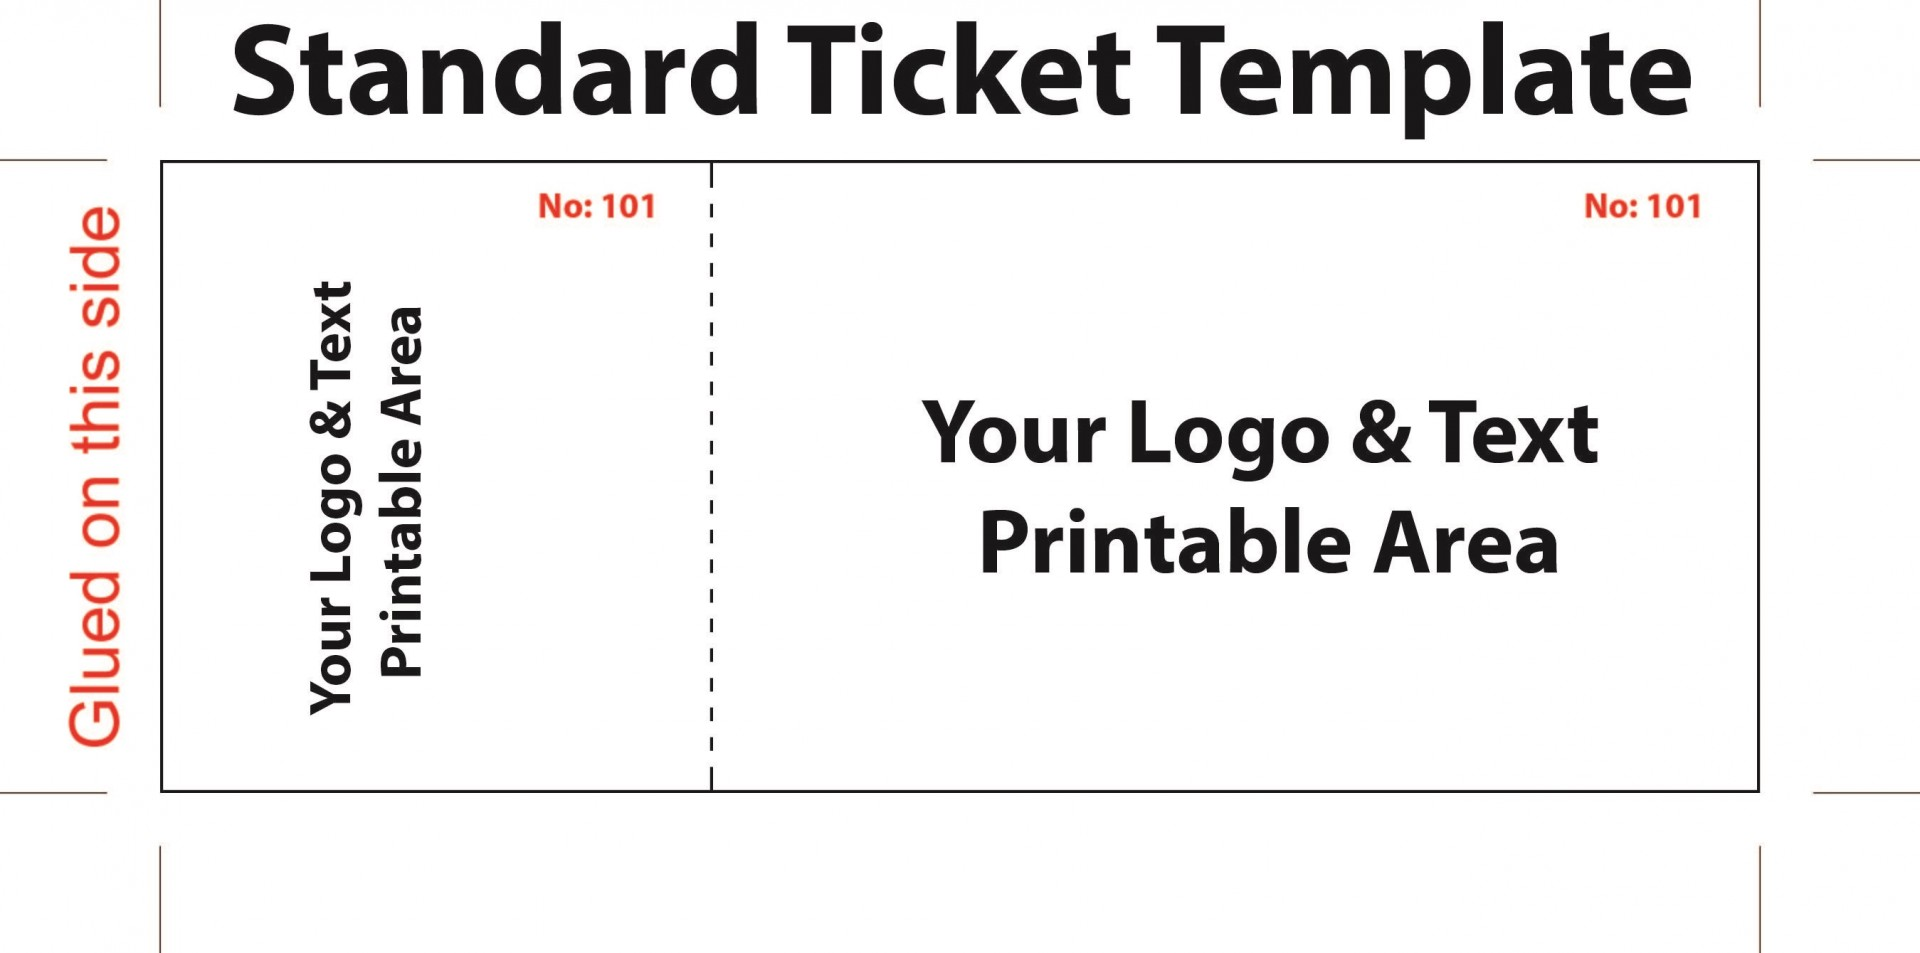 005 Frightening Free Editable Concert Ticket Template High Resolution  Psd Word1920